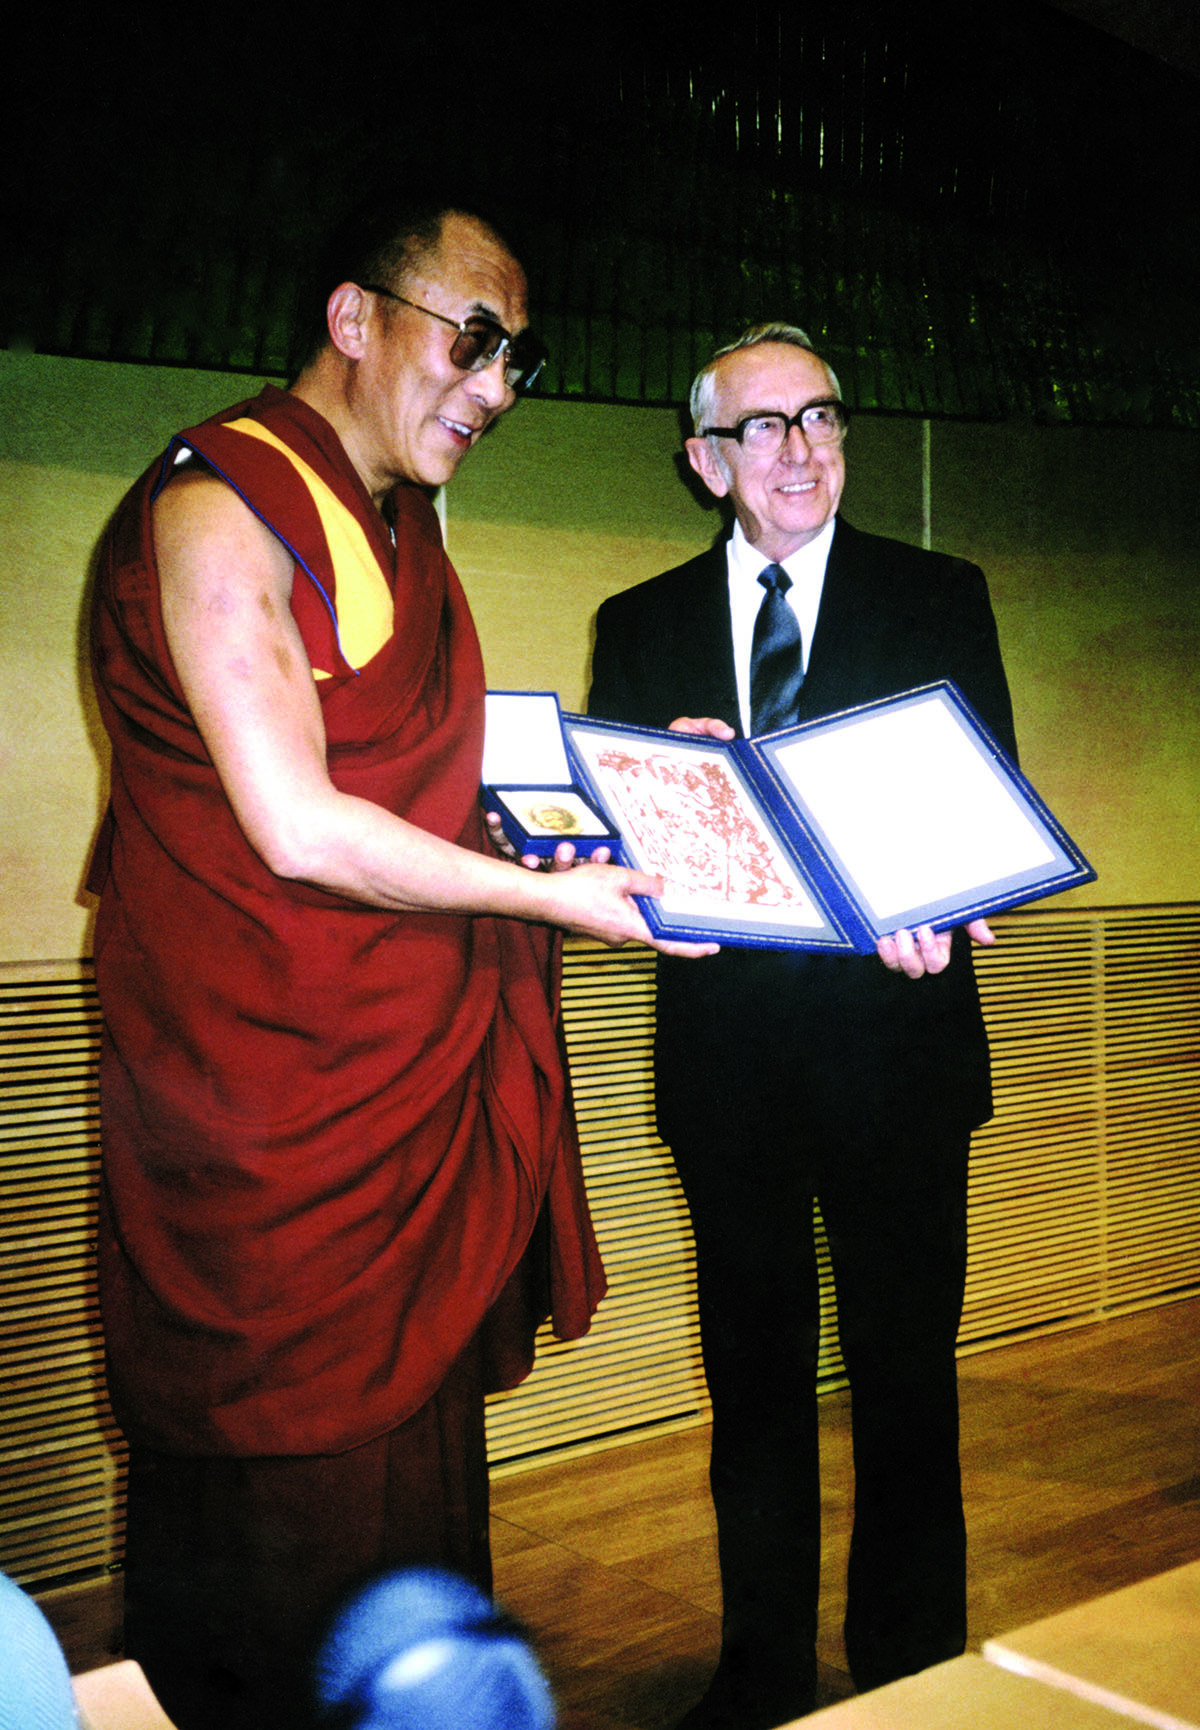 His Holiness the Dalai Lama receiving the Nobel Peace Prize from Mr. Egil Arvik, Chairman of the Norwegian Nobel Committee, Oslo, Norway, 10 December 1989